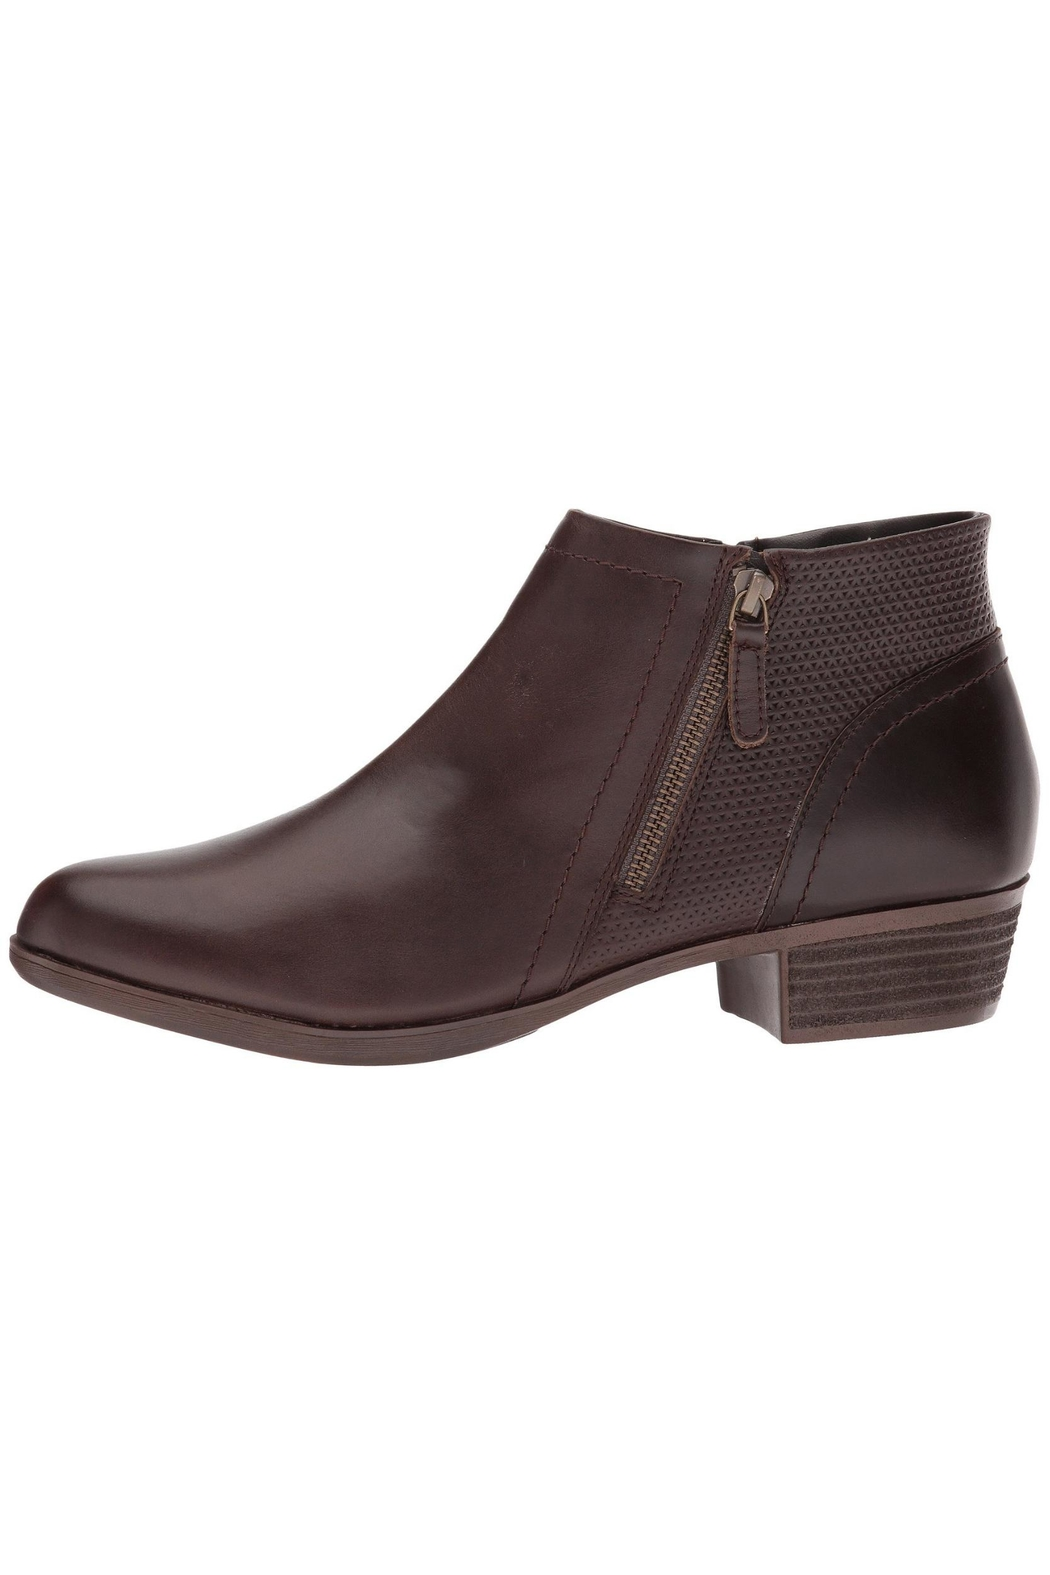 Rockport Oliana Pull-On Bootie - Main Image